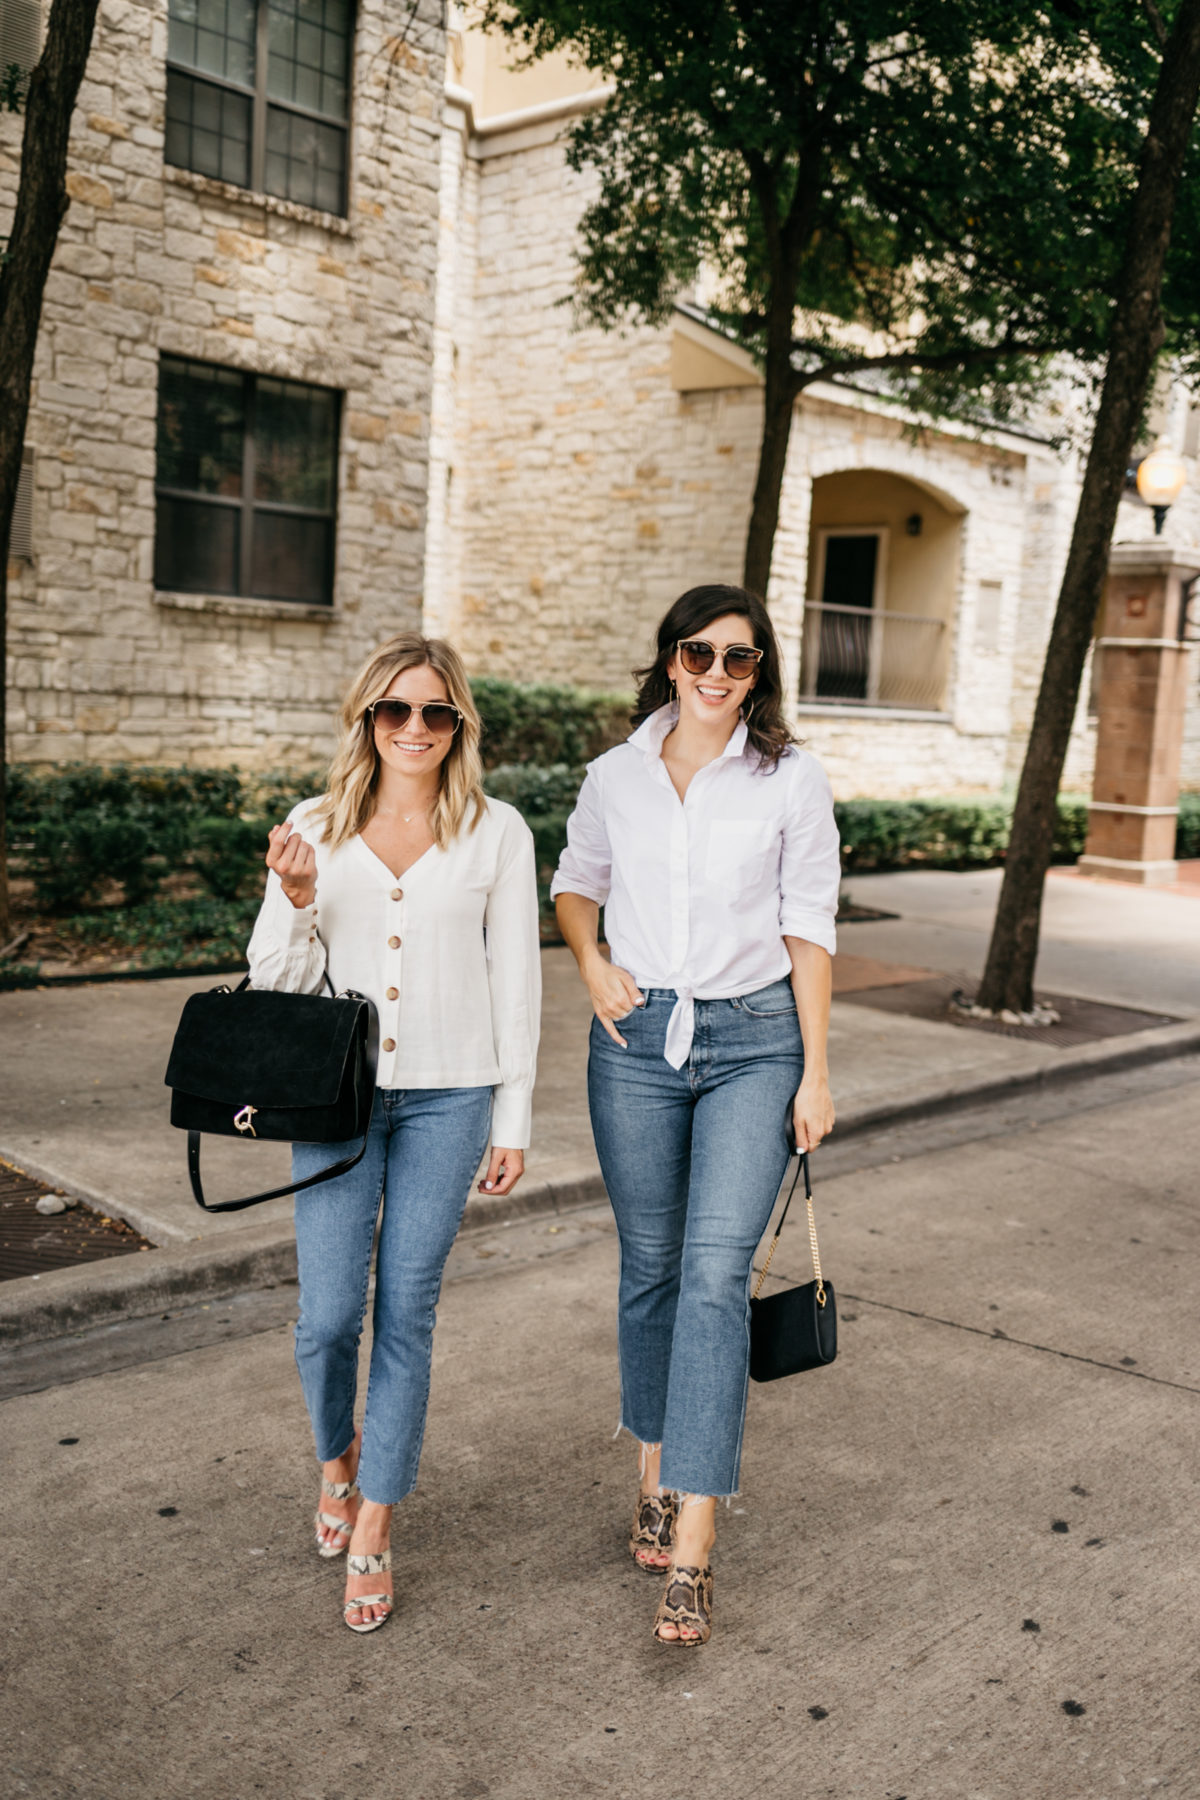 two women wearing jeans and white top